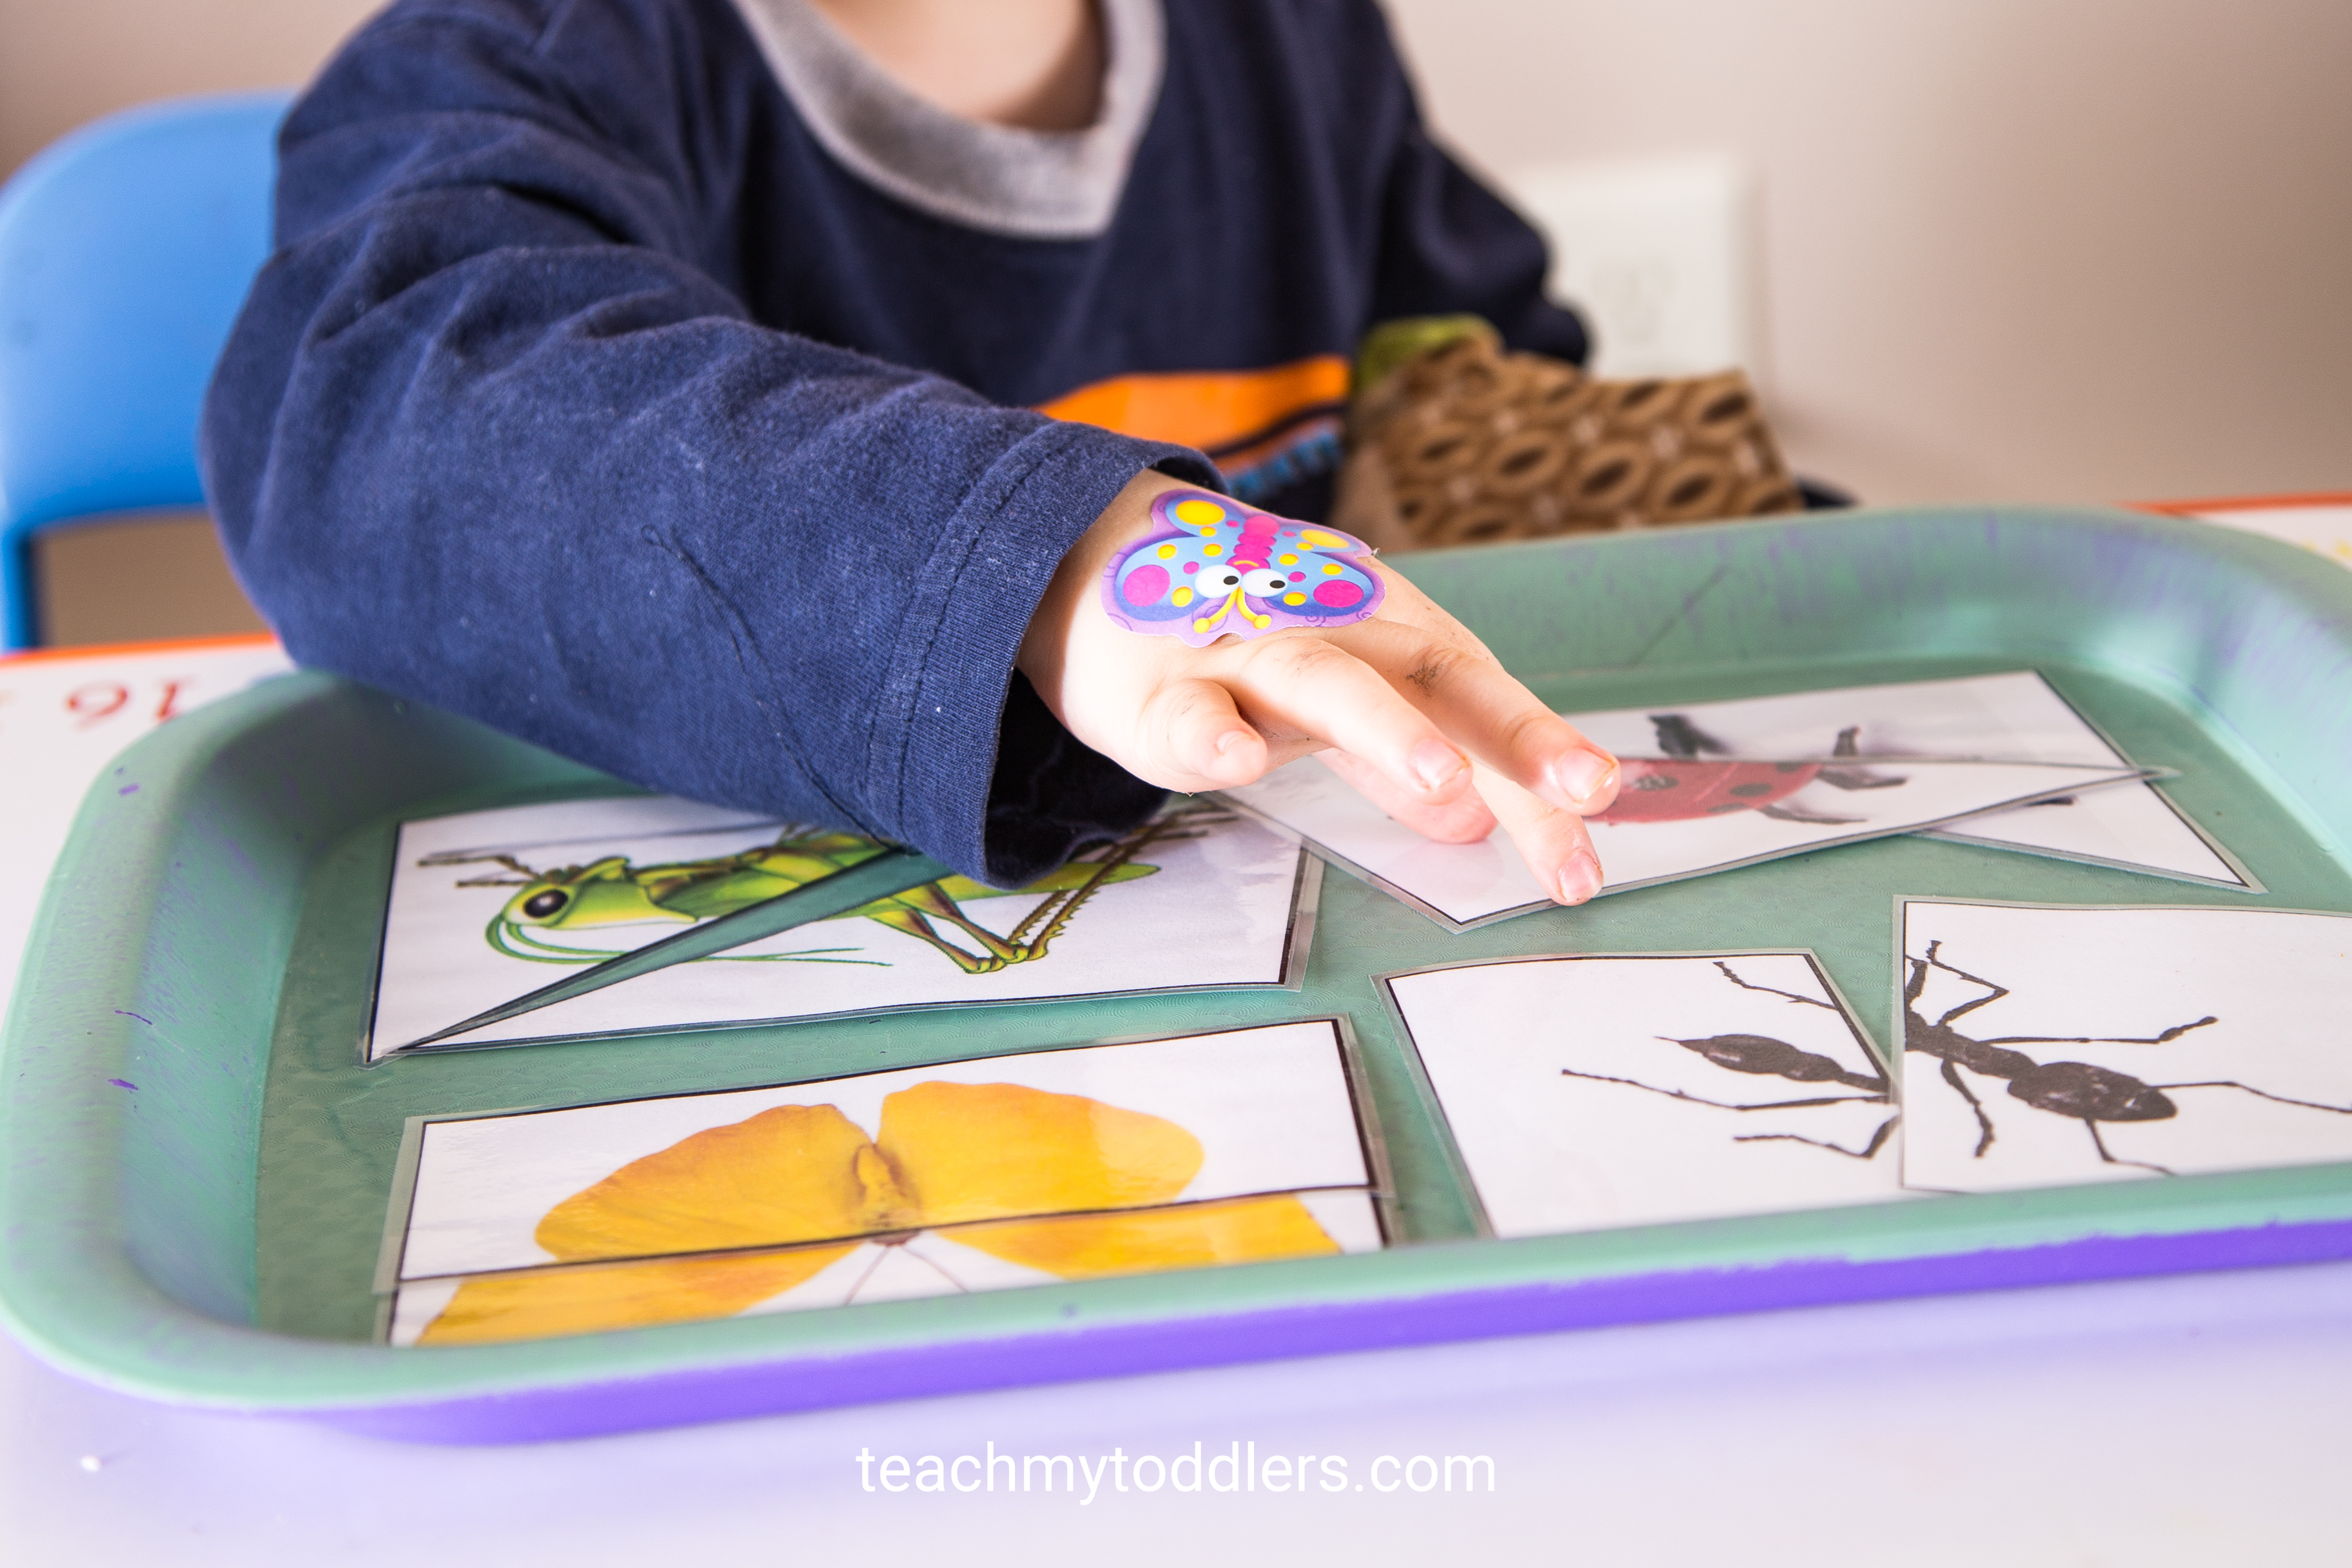 What a great idea in teaching your toddlers about bugs using these awesome trays